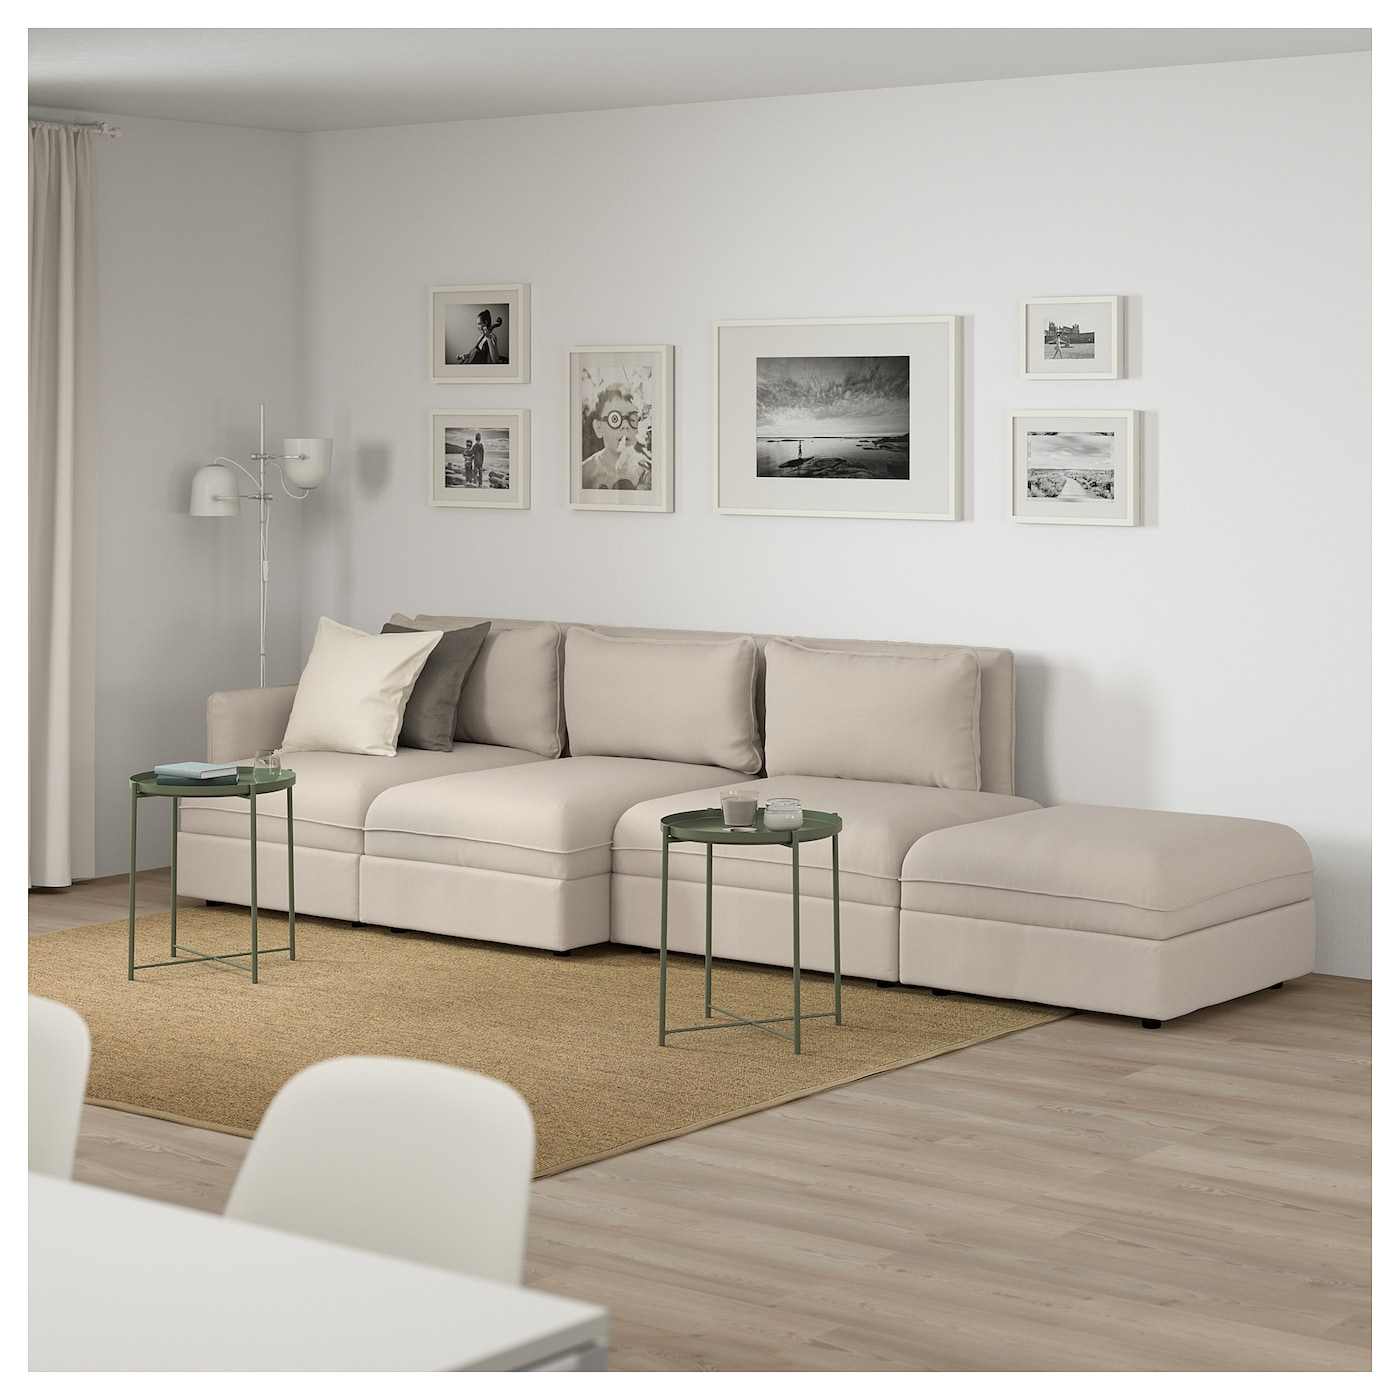 IKEA VALLENTUNA 4-seat sofa 10 year guarantee. Read about the terms in the guarantee brochure.